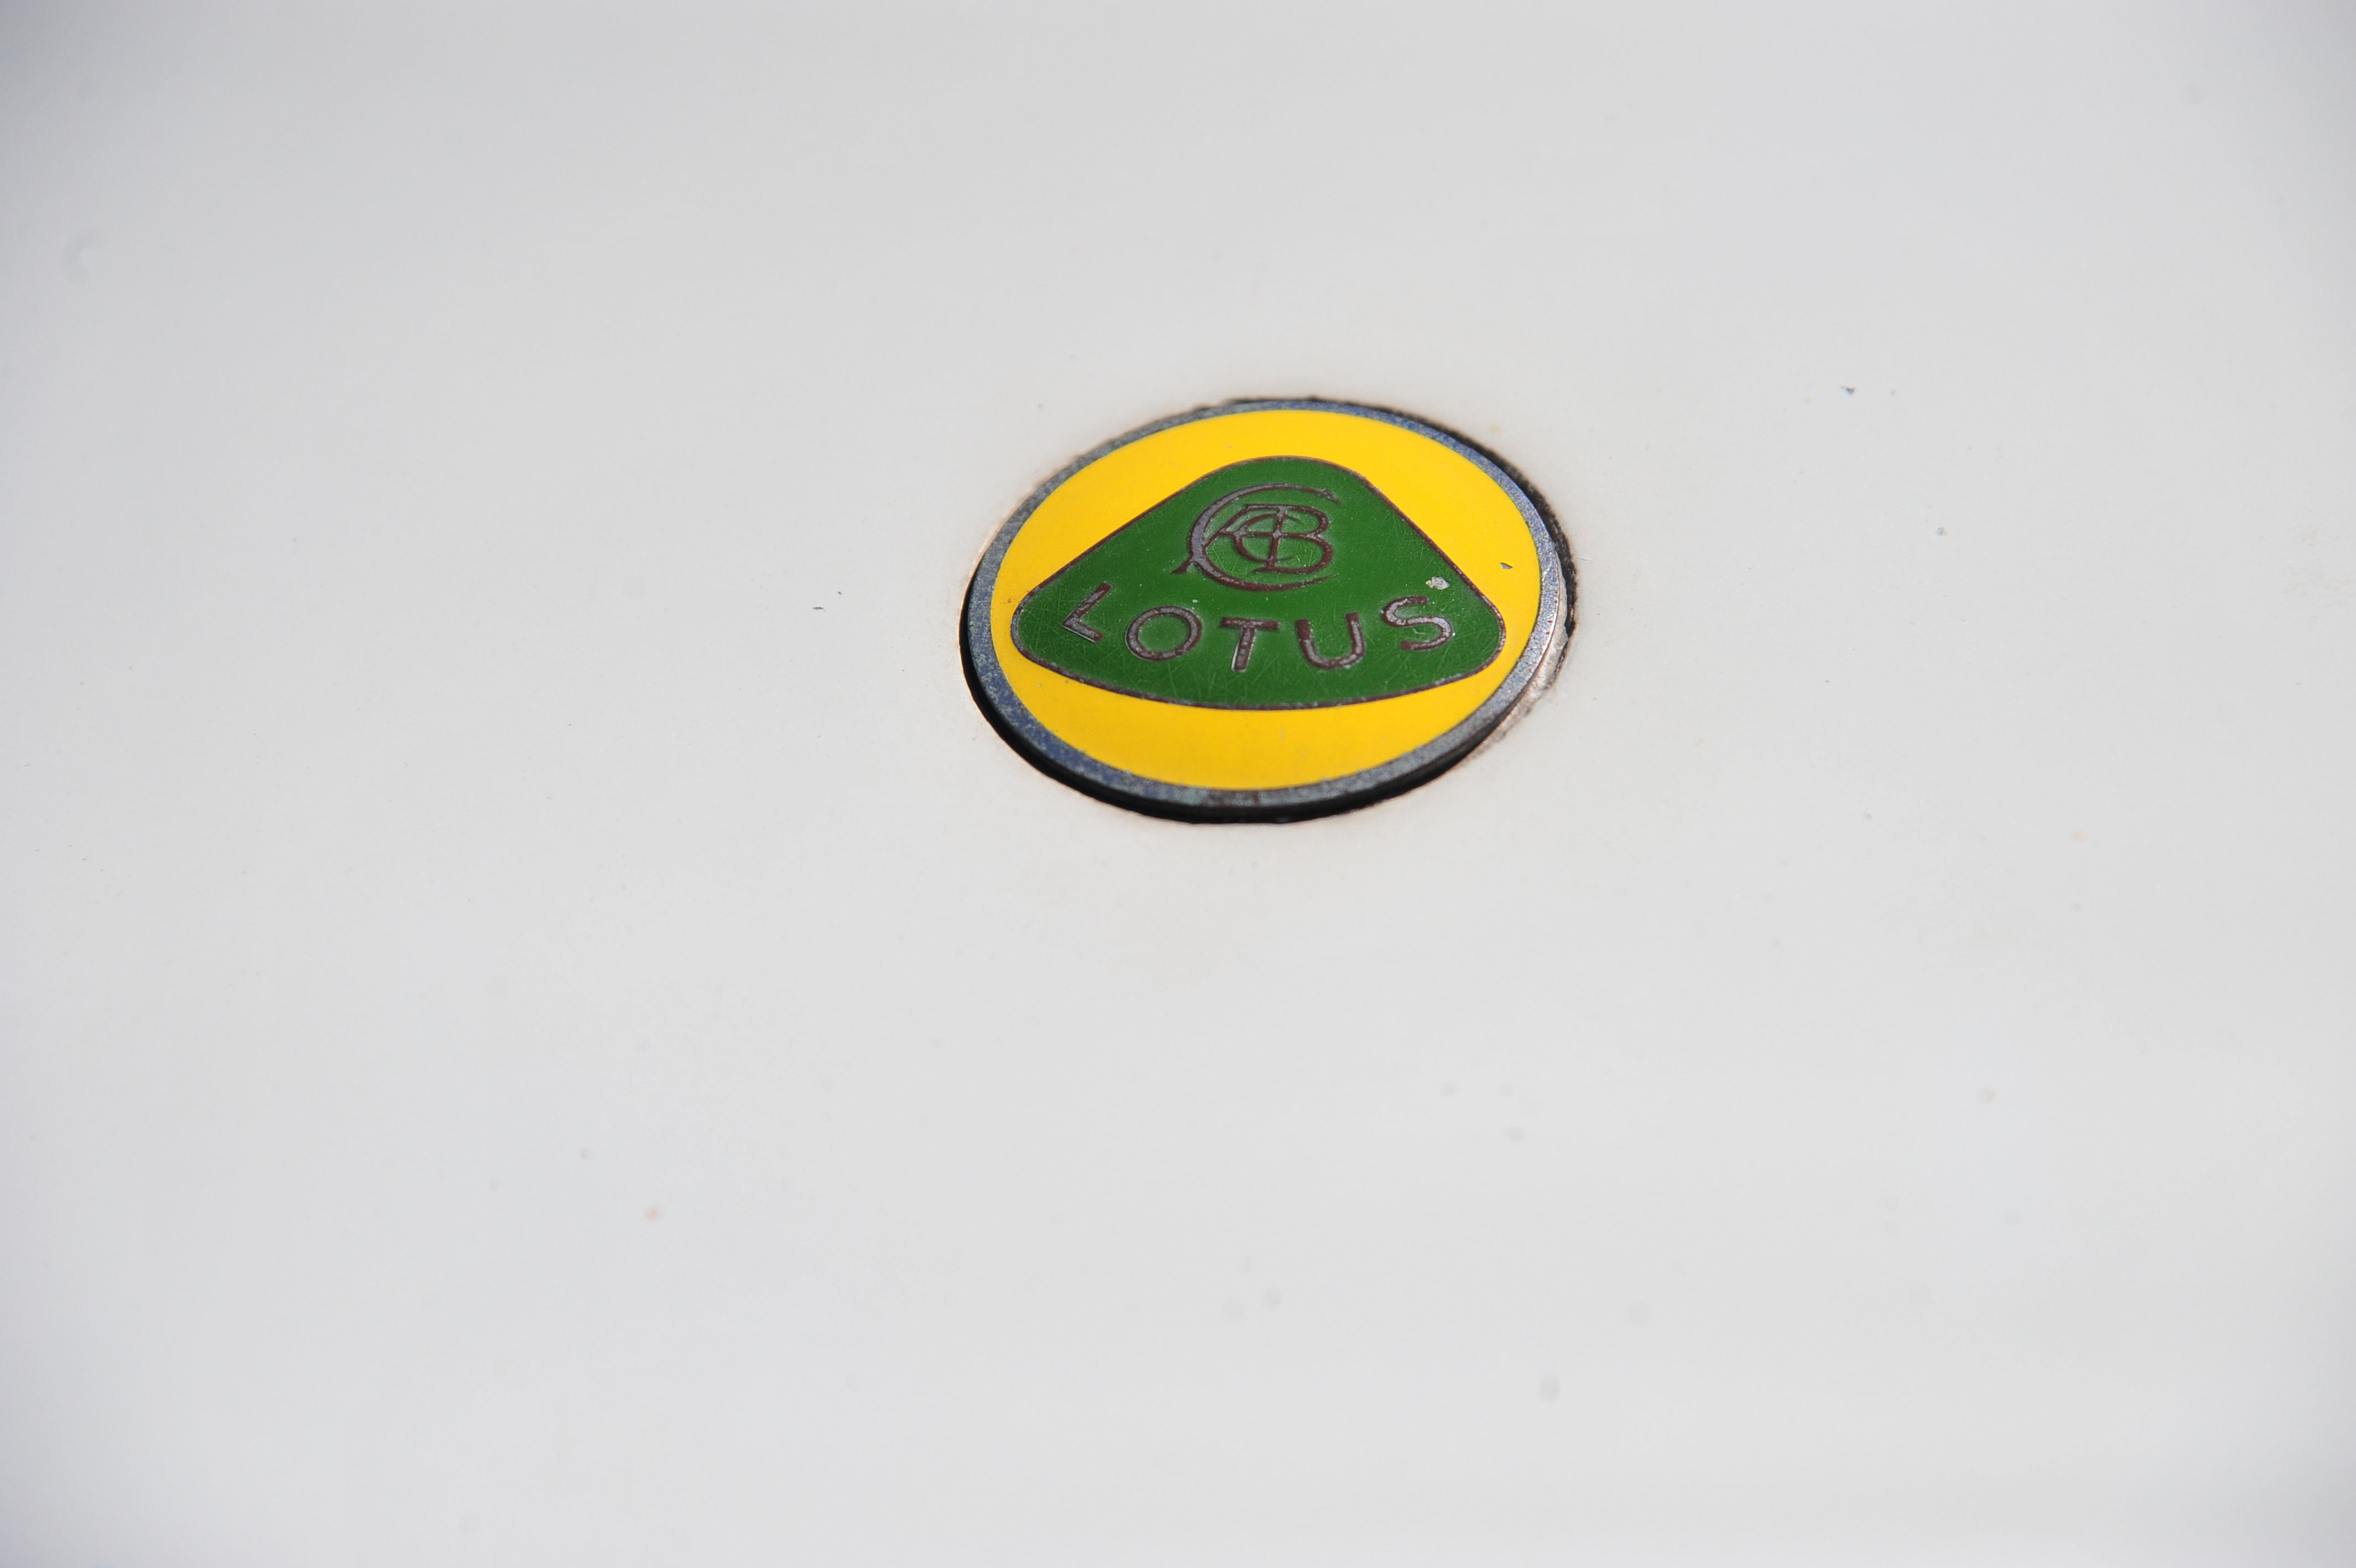 1961 Type 14 Lotus Elite badge